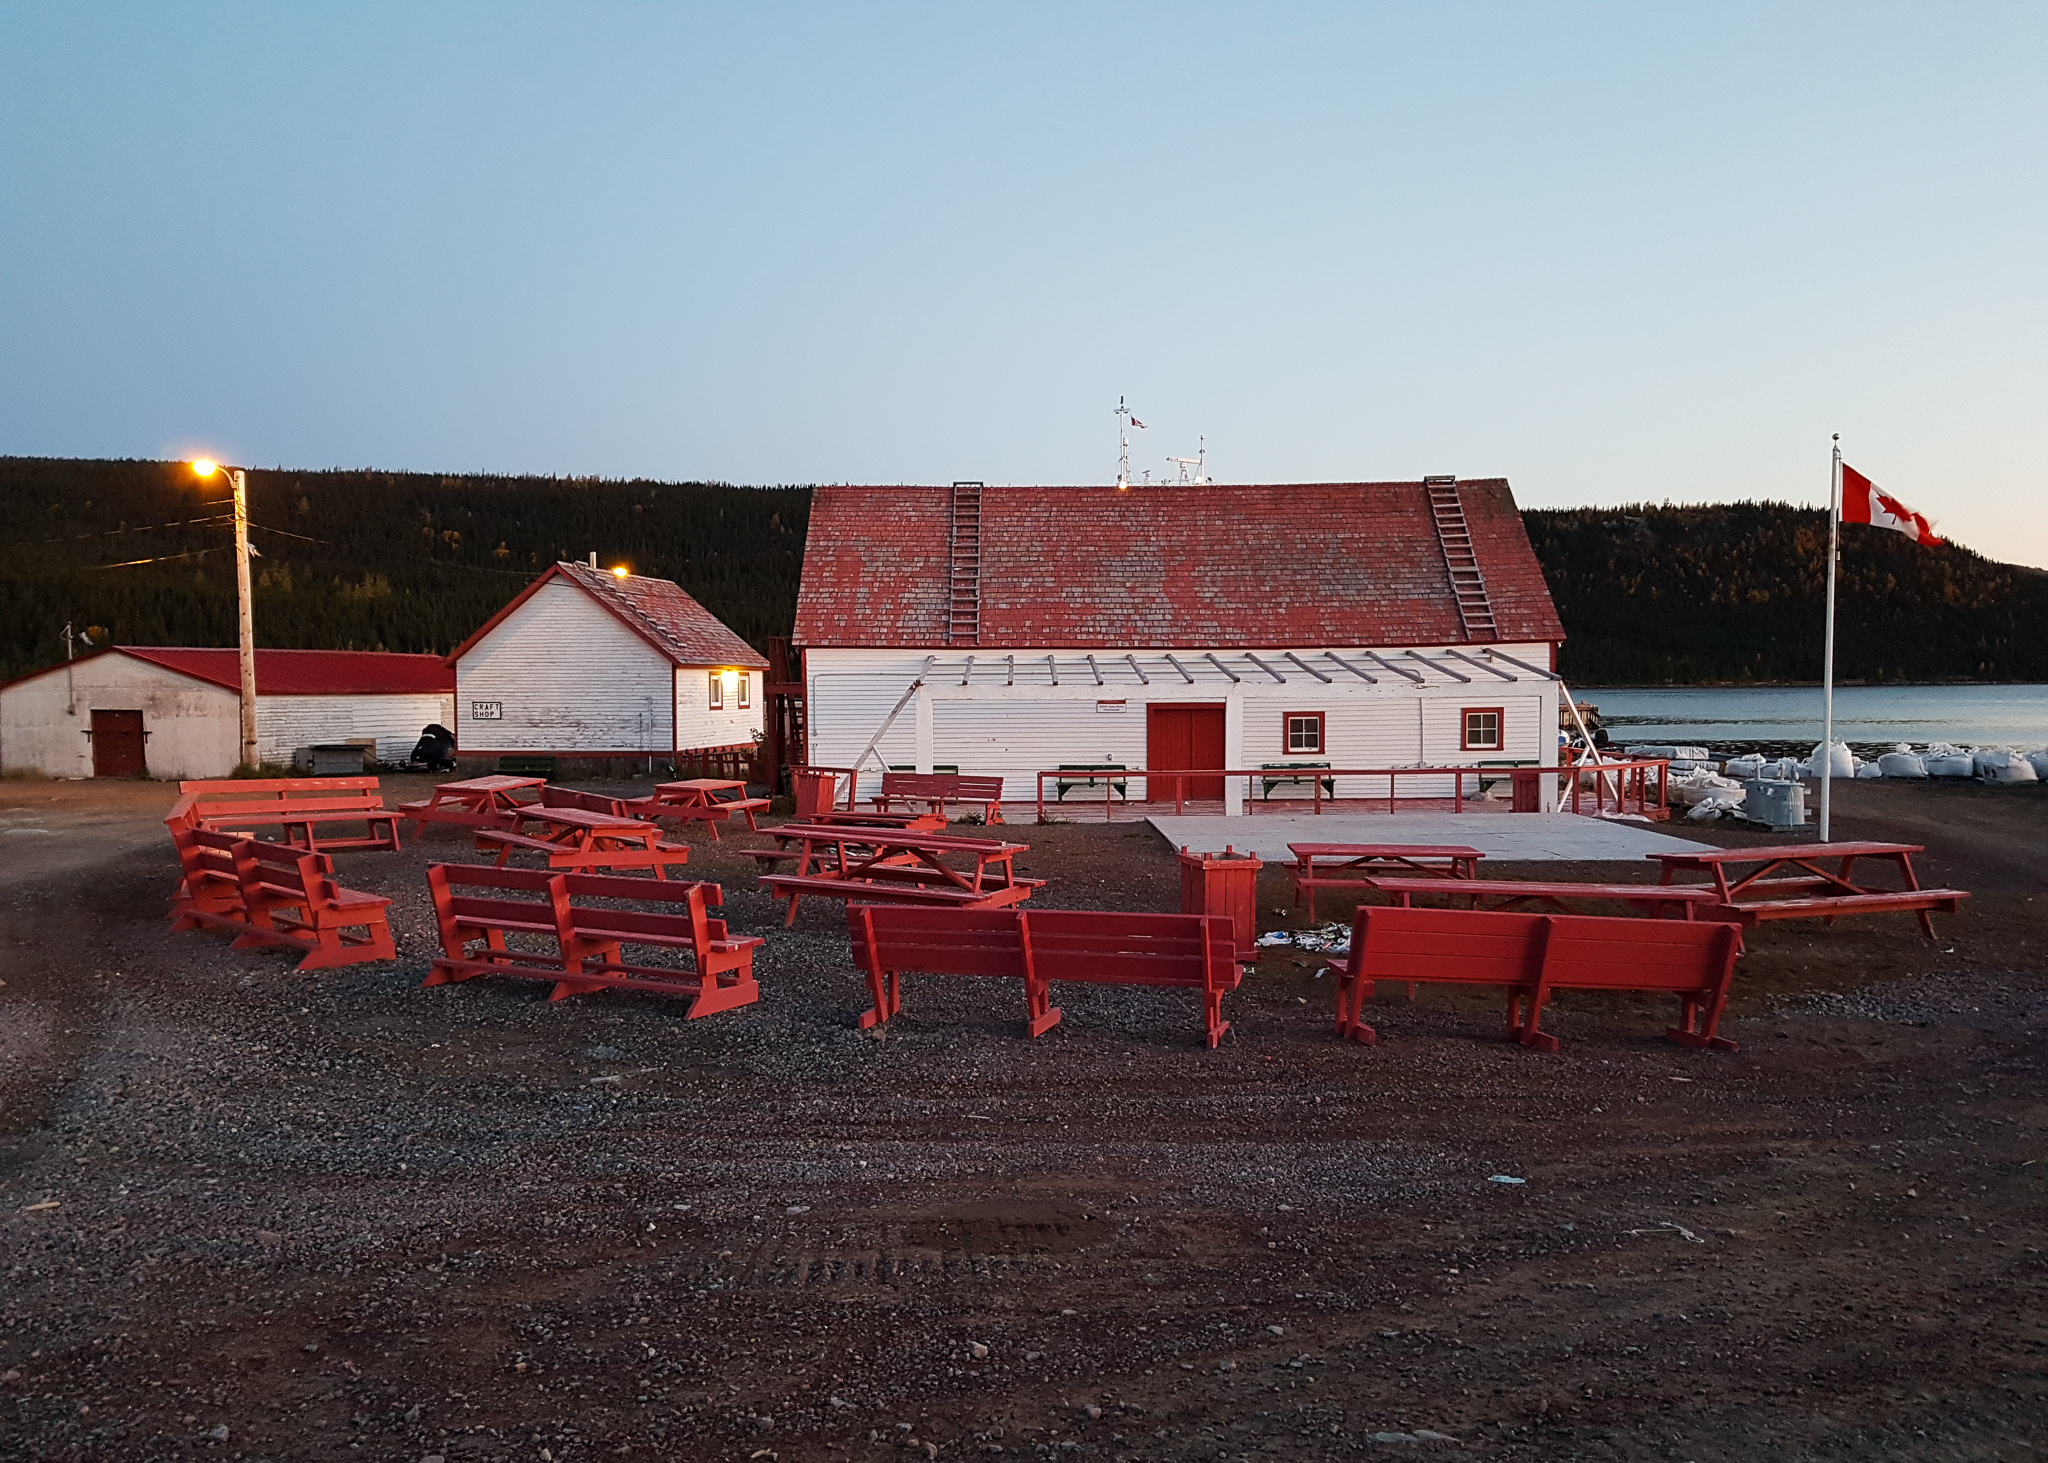 red roofed building and red benches